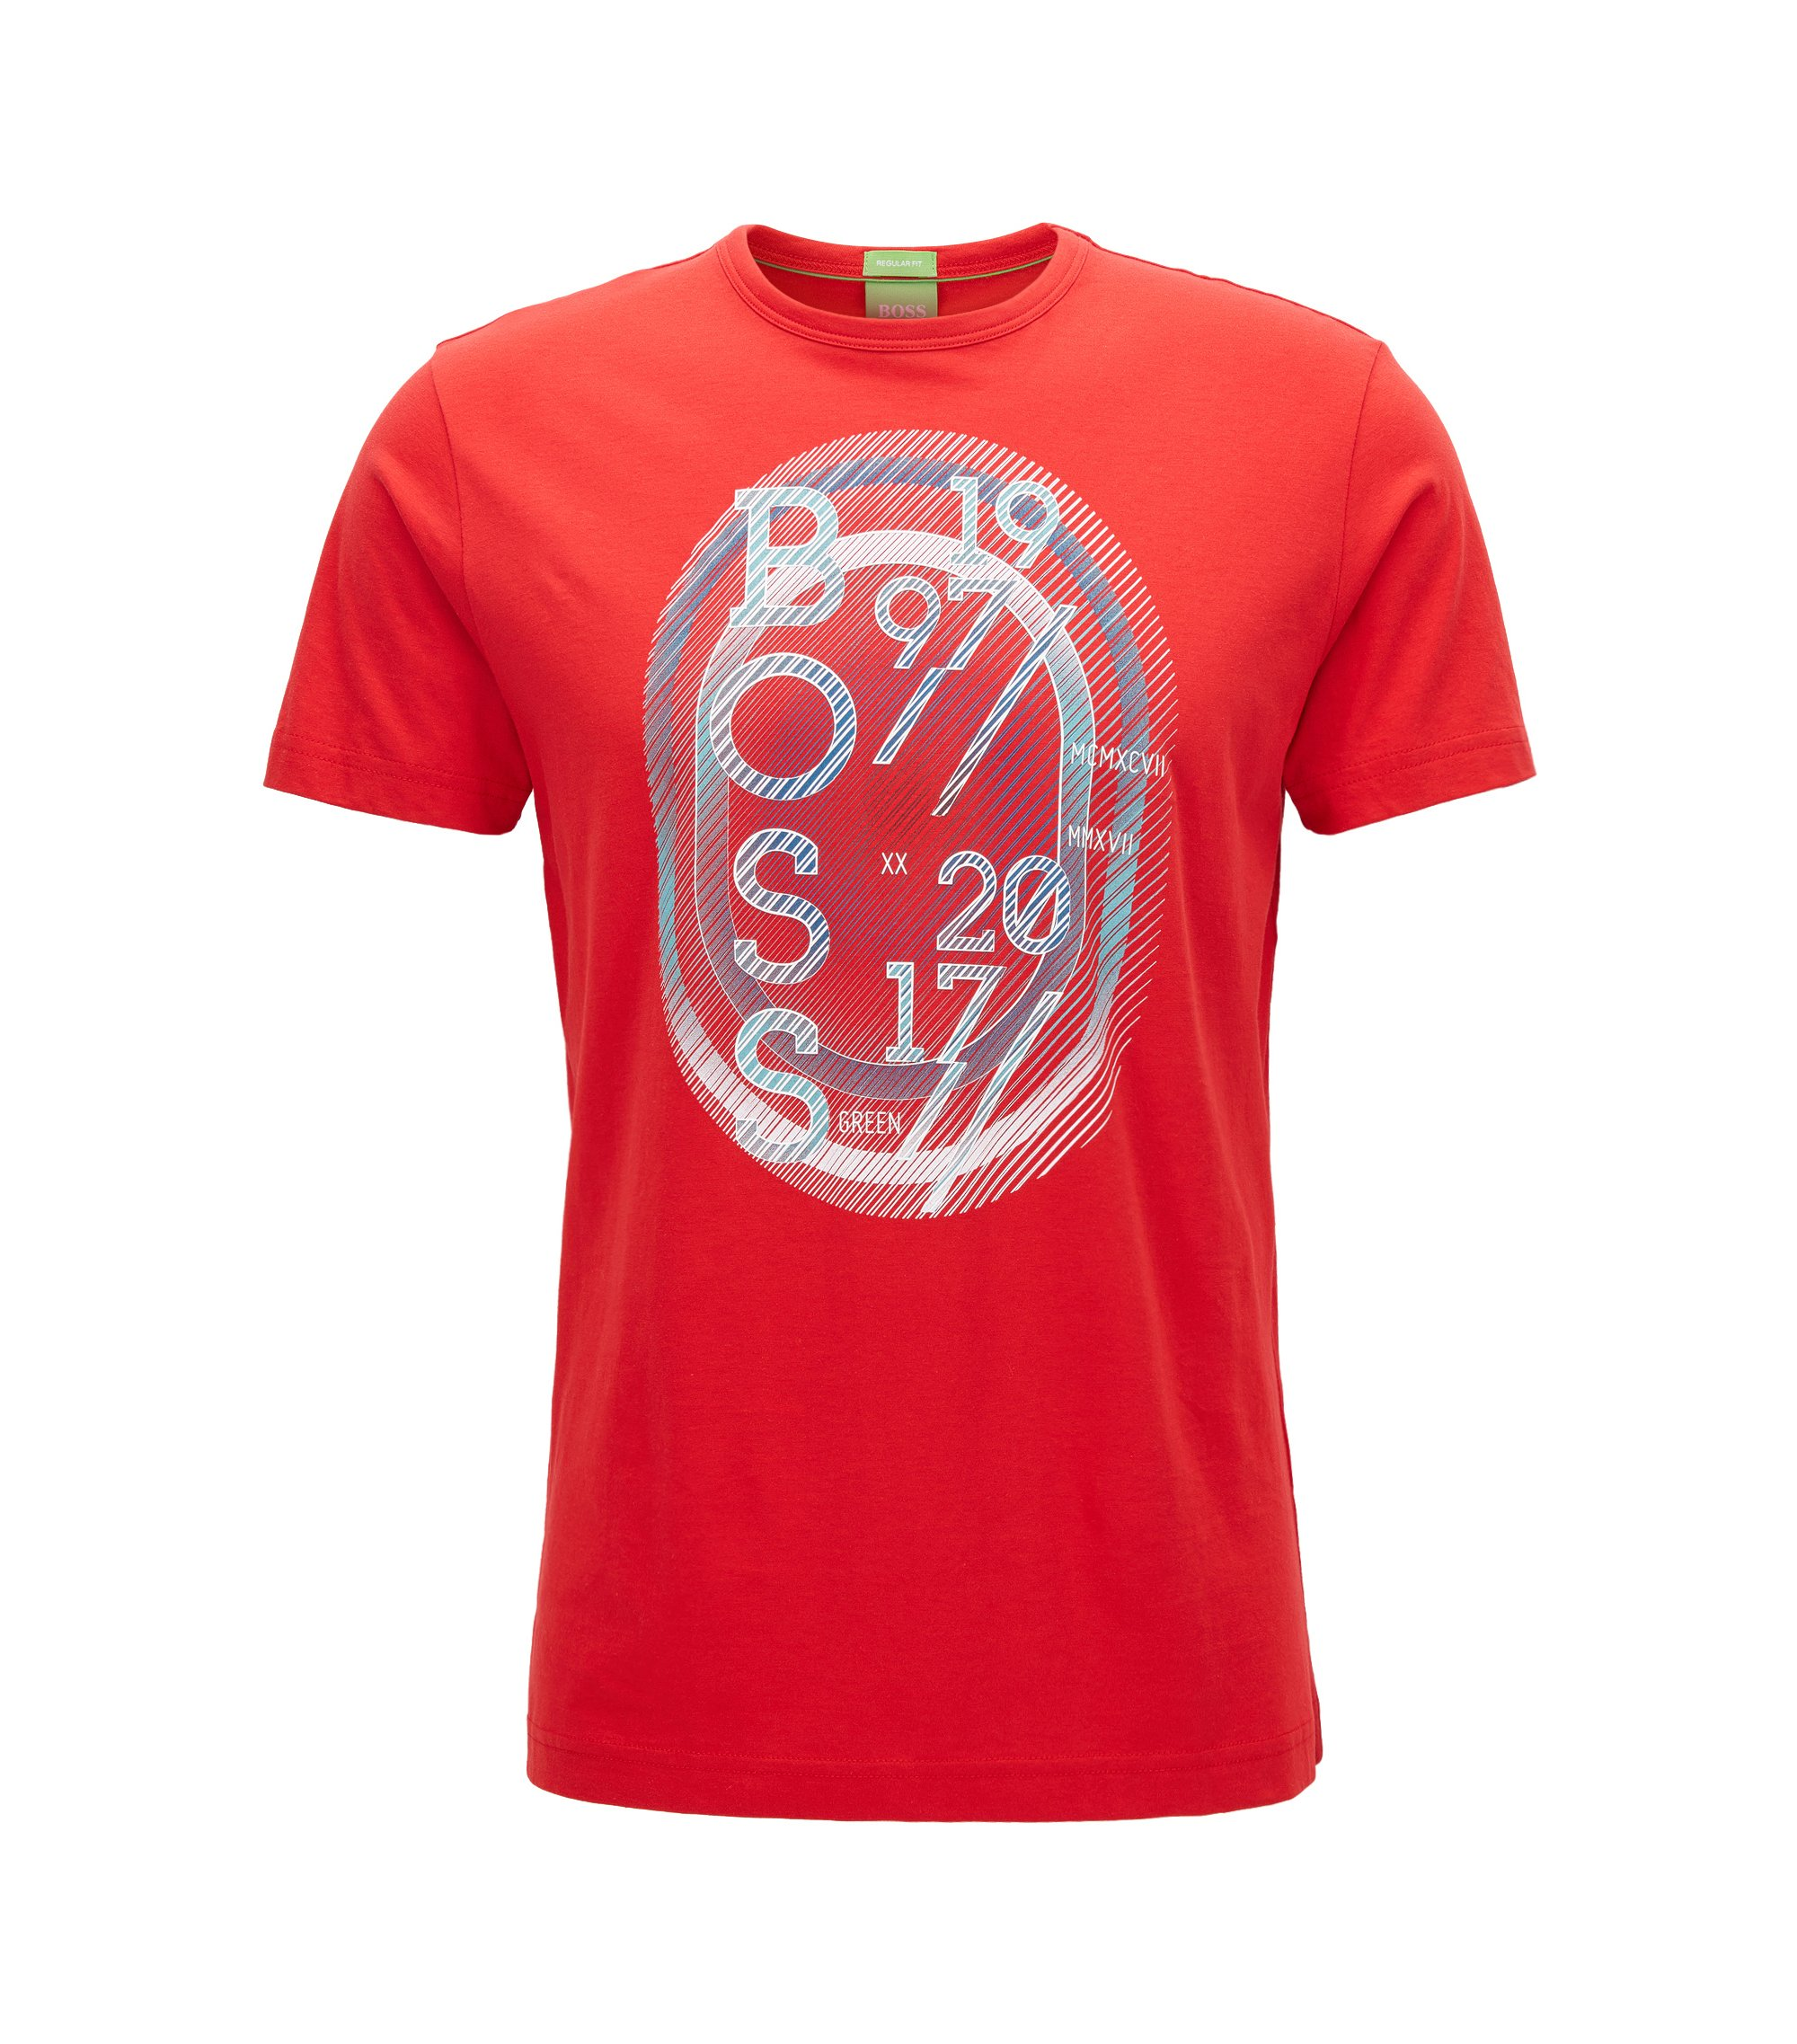 Stretch Cotton Graphic T-Shirt | Tee, Red